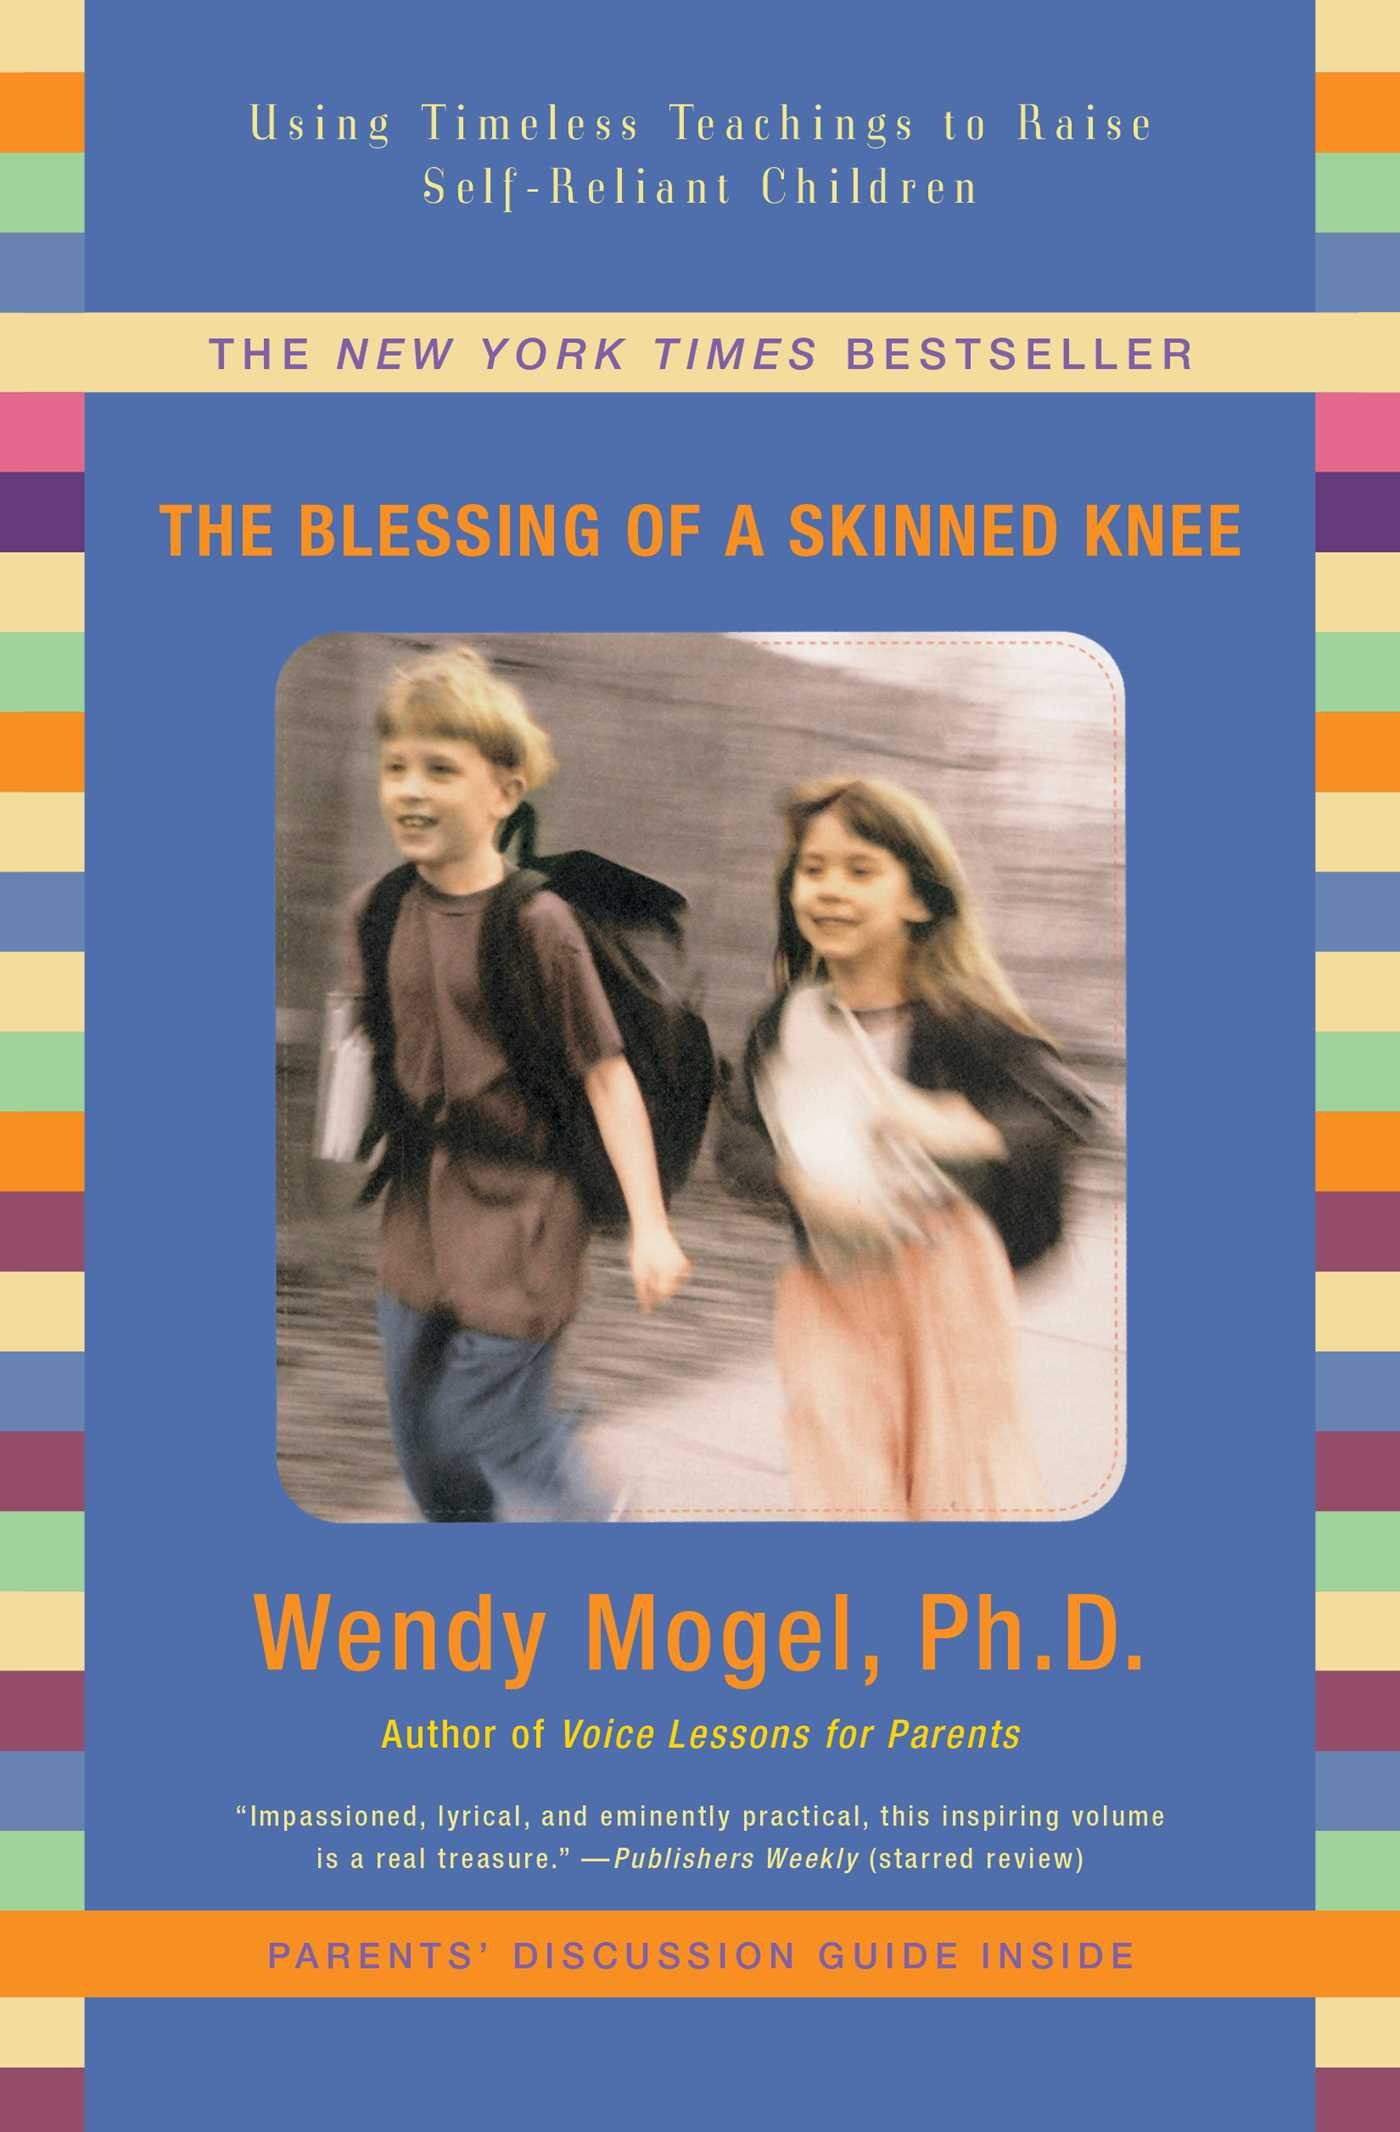 The Blessing of a Skinned Knee - Mogel, Wendy.The Blessing of a Skinned Knee: Using Jewish Teachings to Raise Self-Reliant children.New York: Scribner. 2008.